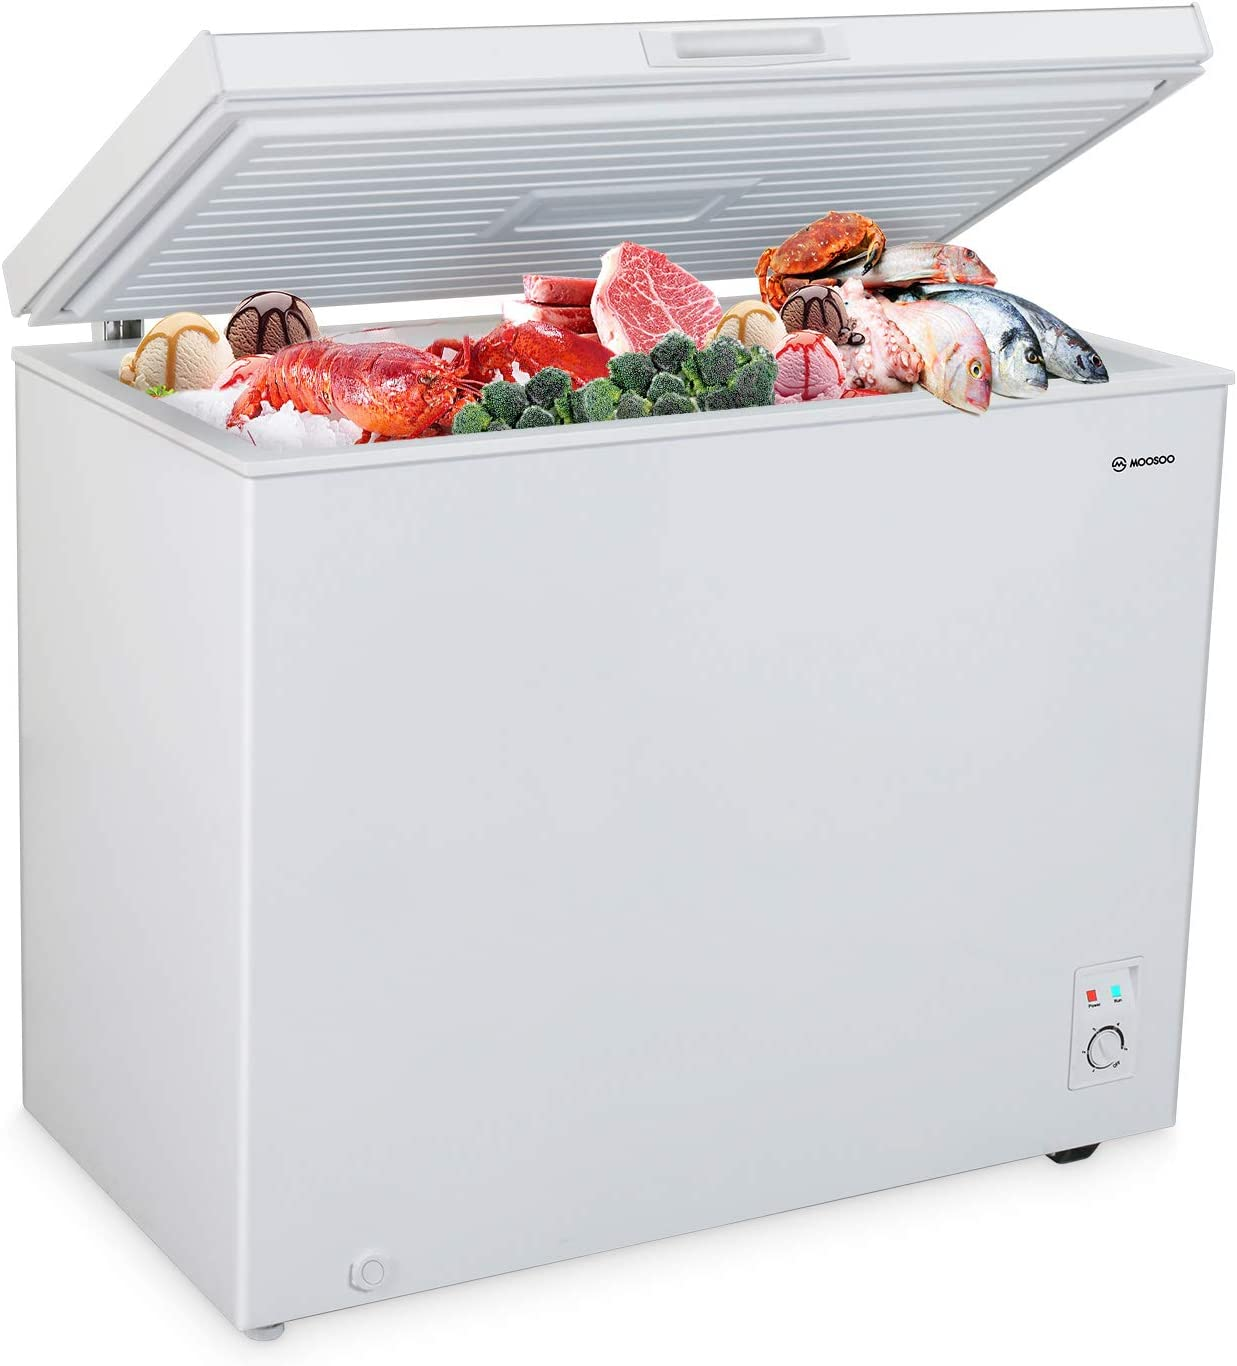 MOOSOO Chest Freezer, 7.0 Cubic Feet Deep Freezer with Energy Saving and Low-Noise, 5 Gears Adjustable Temperature, with Removable Storage Basket and Roller Movement